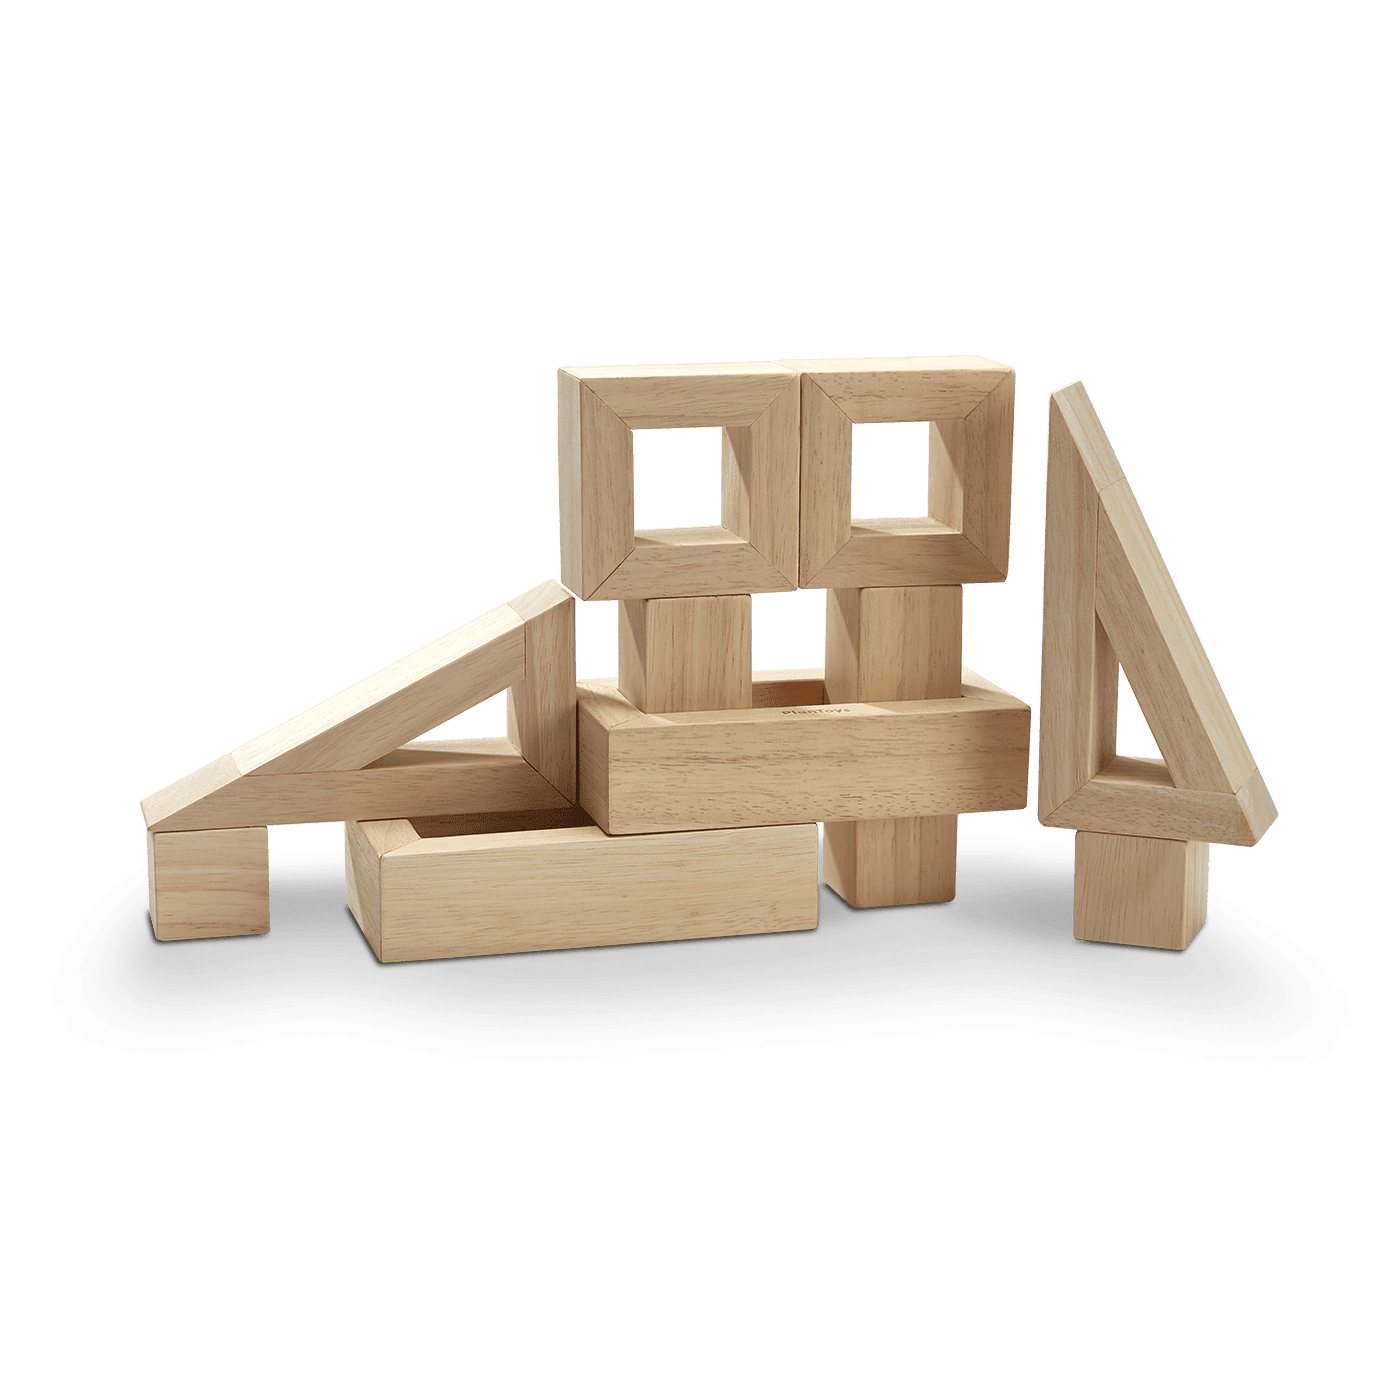 5509_PlanToys_HOLLOW_BLOCKS_Blocks_and_Construction_Creative_Mathematical_Language_and_Communications_Social_Coordination_Imagination_3yrs_Wooden_toys_Education_toys_Safety_Toys_Non-toxic_0.png